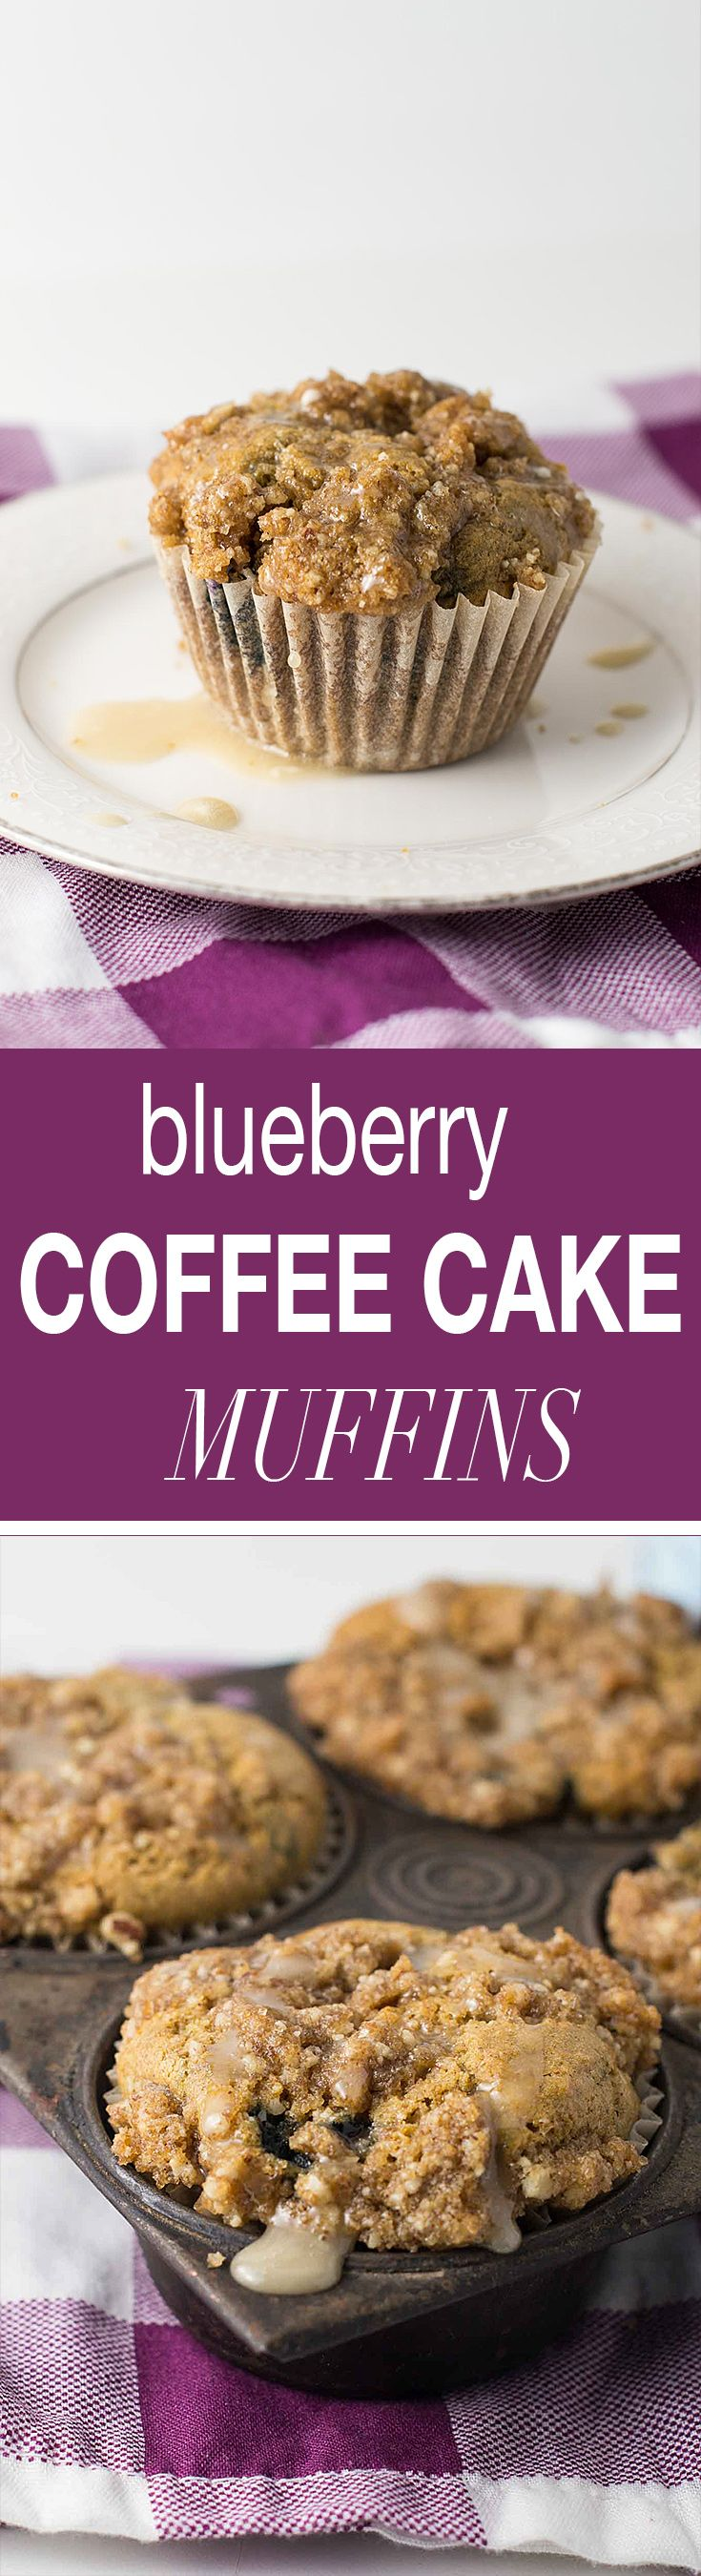 Whole wheat blueberry coffee cake muffins recipe. The perfect dairy free muffin to enjoy with your morning cup of coffee! #ad #SilkandSimplyPureCreamers @lovemysilk @walmart